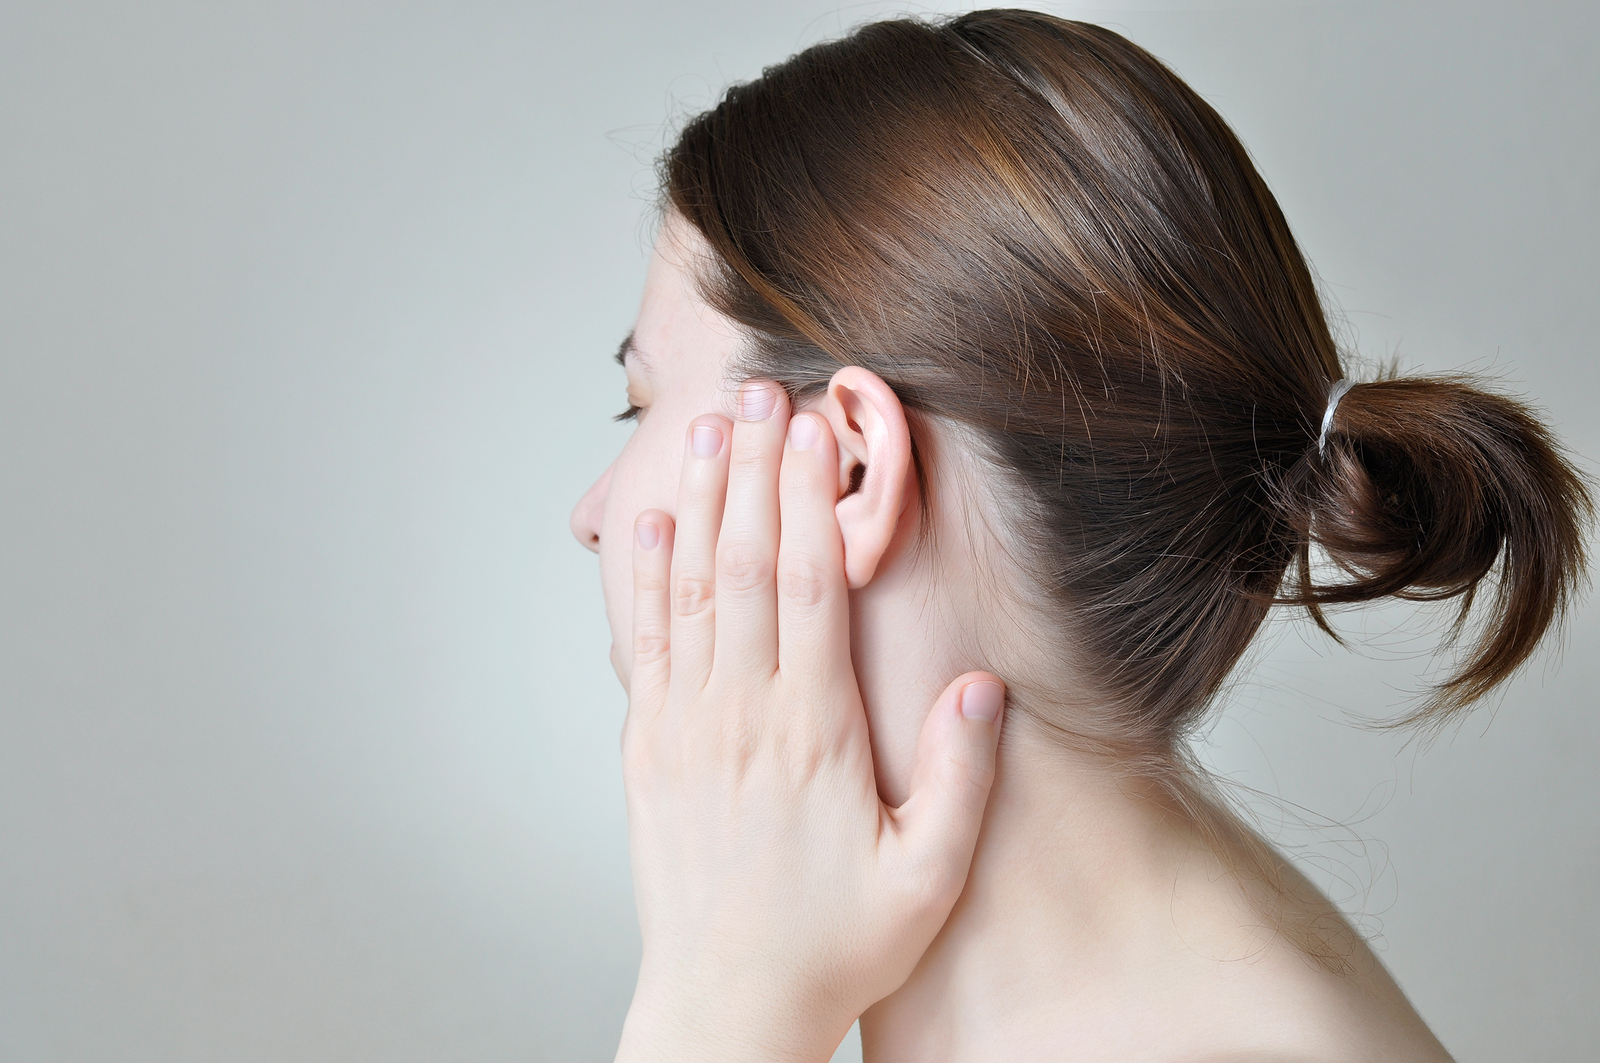 Having Ear Infection: Neck and Back Pain Can Be Next